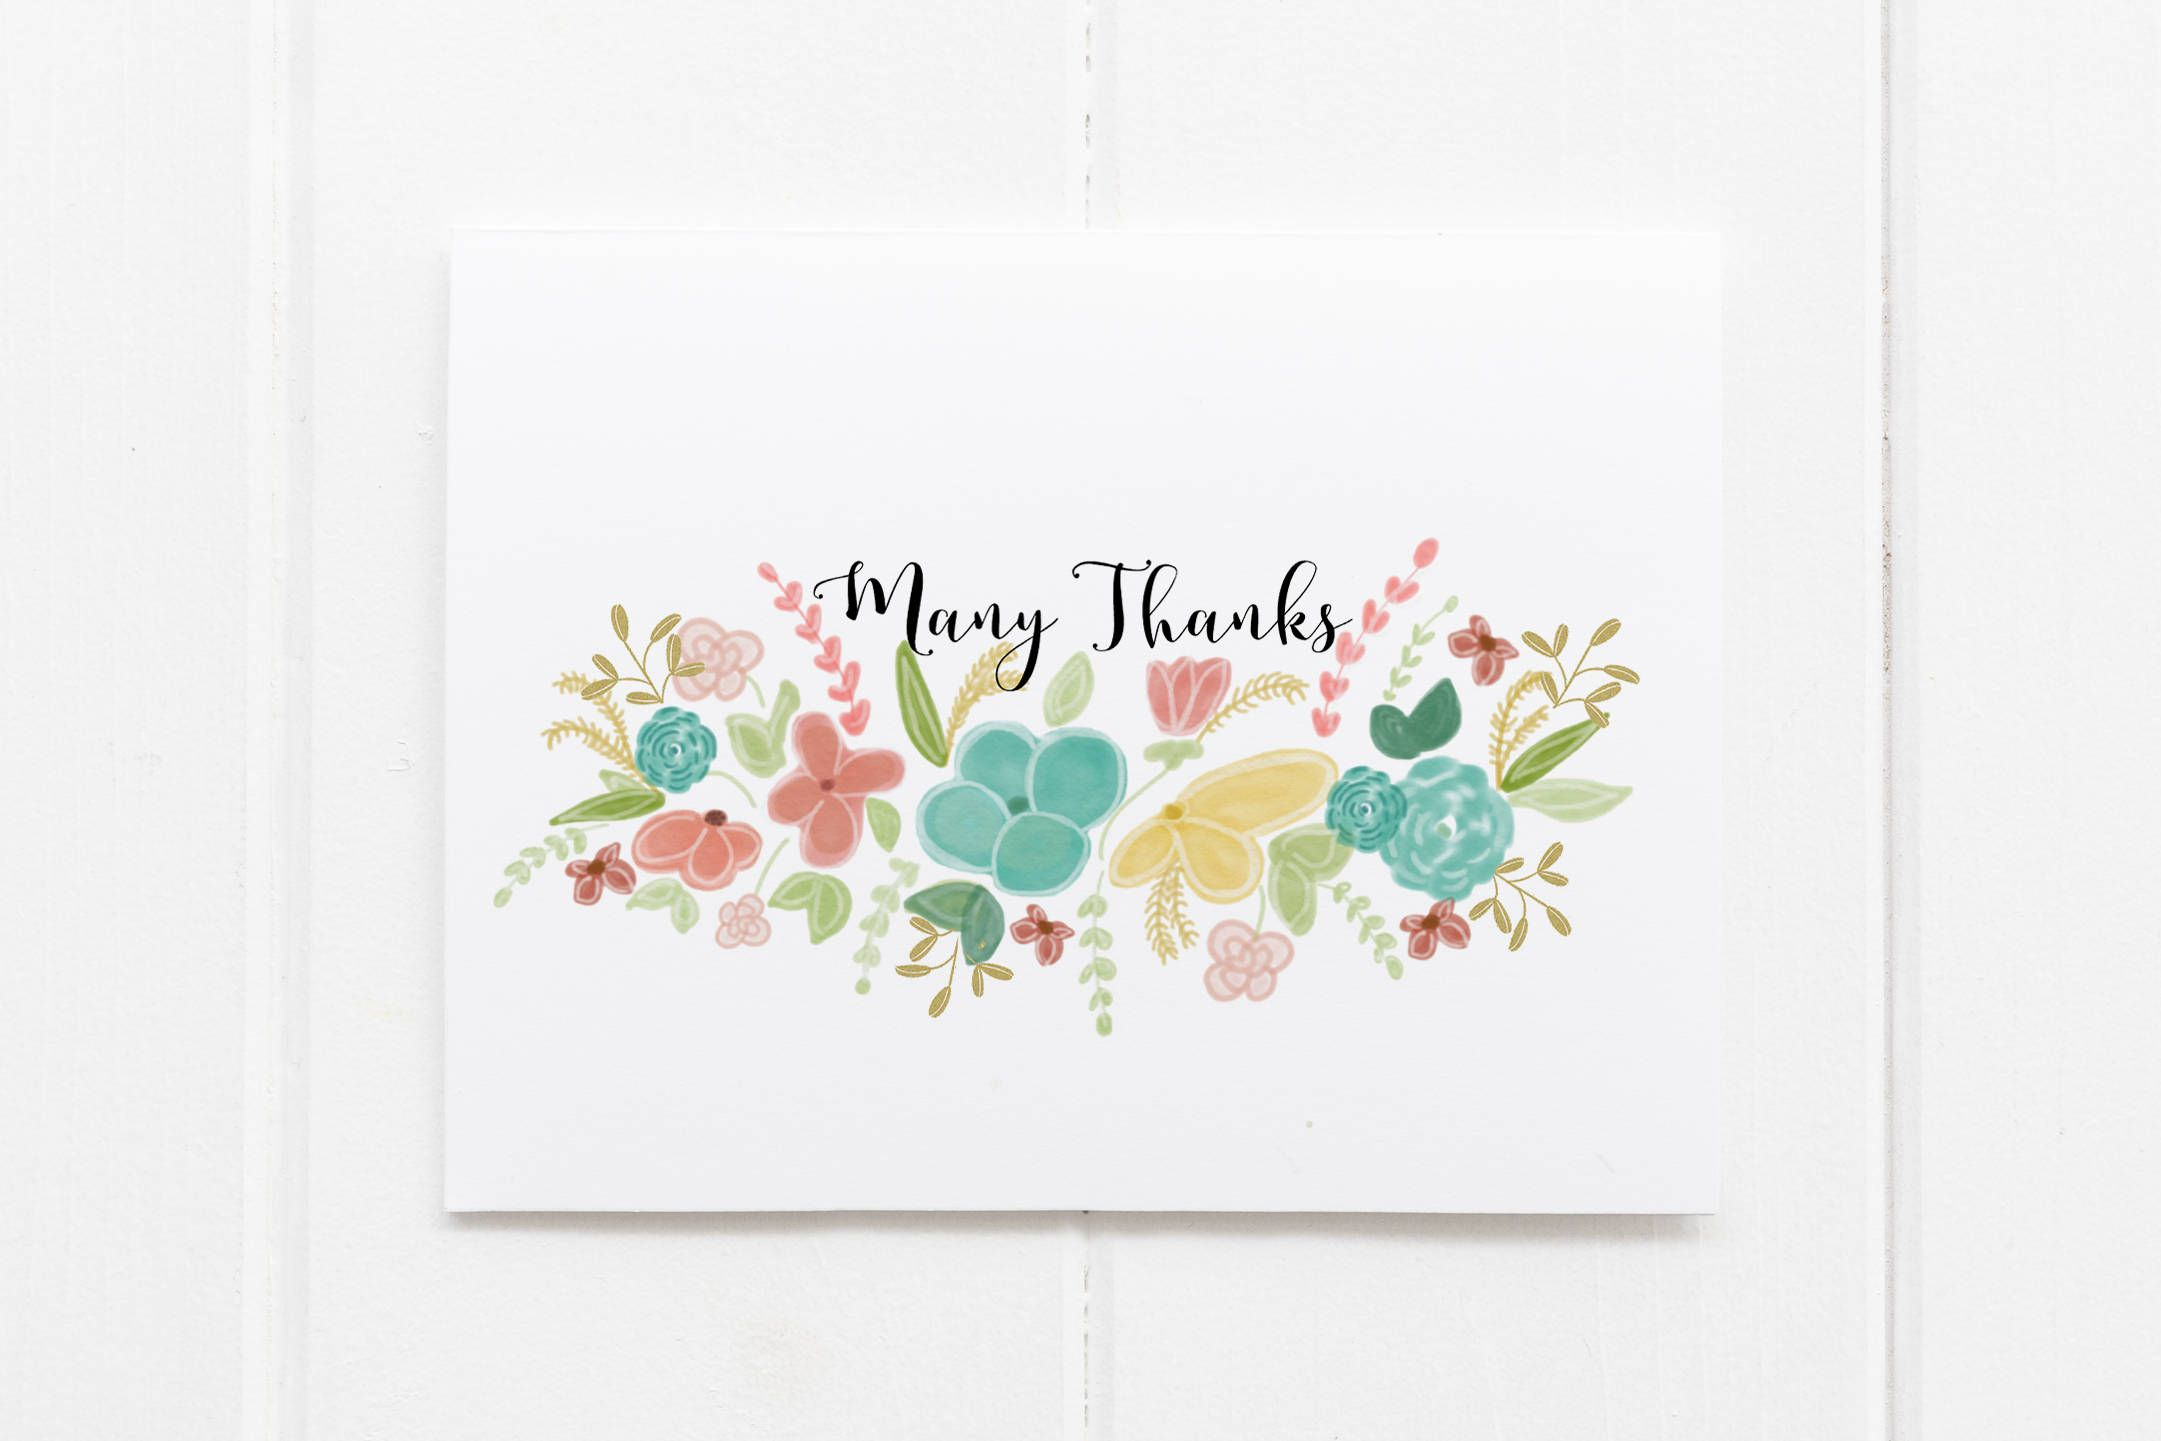 Many Thanks Greeting Card Hand Drawn Thank You Notes Family